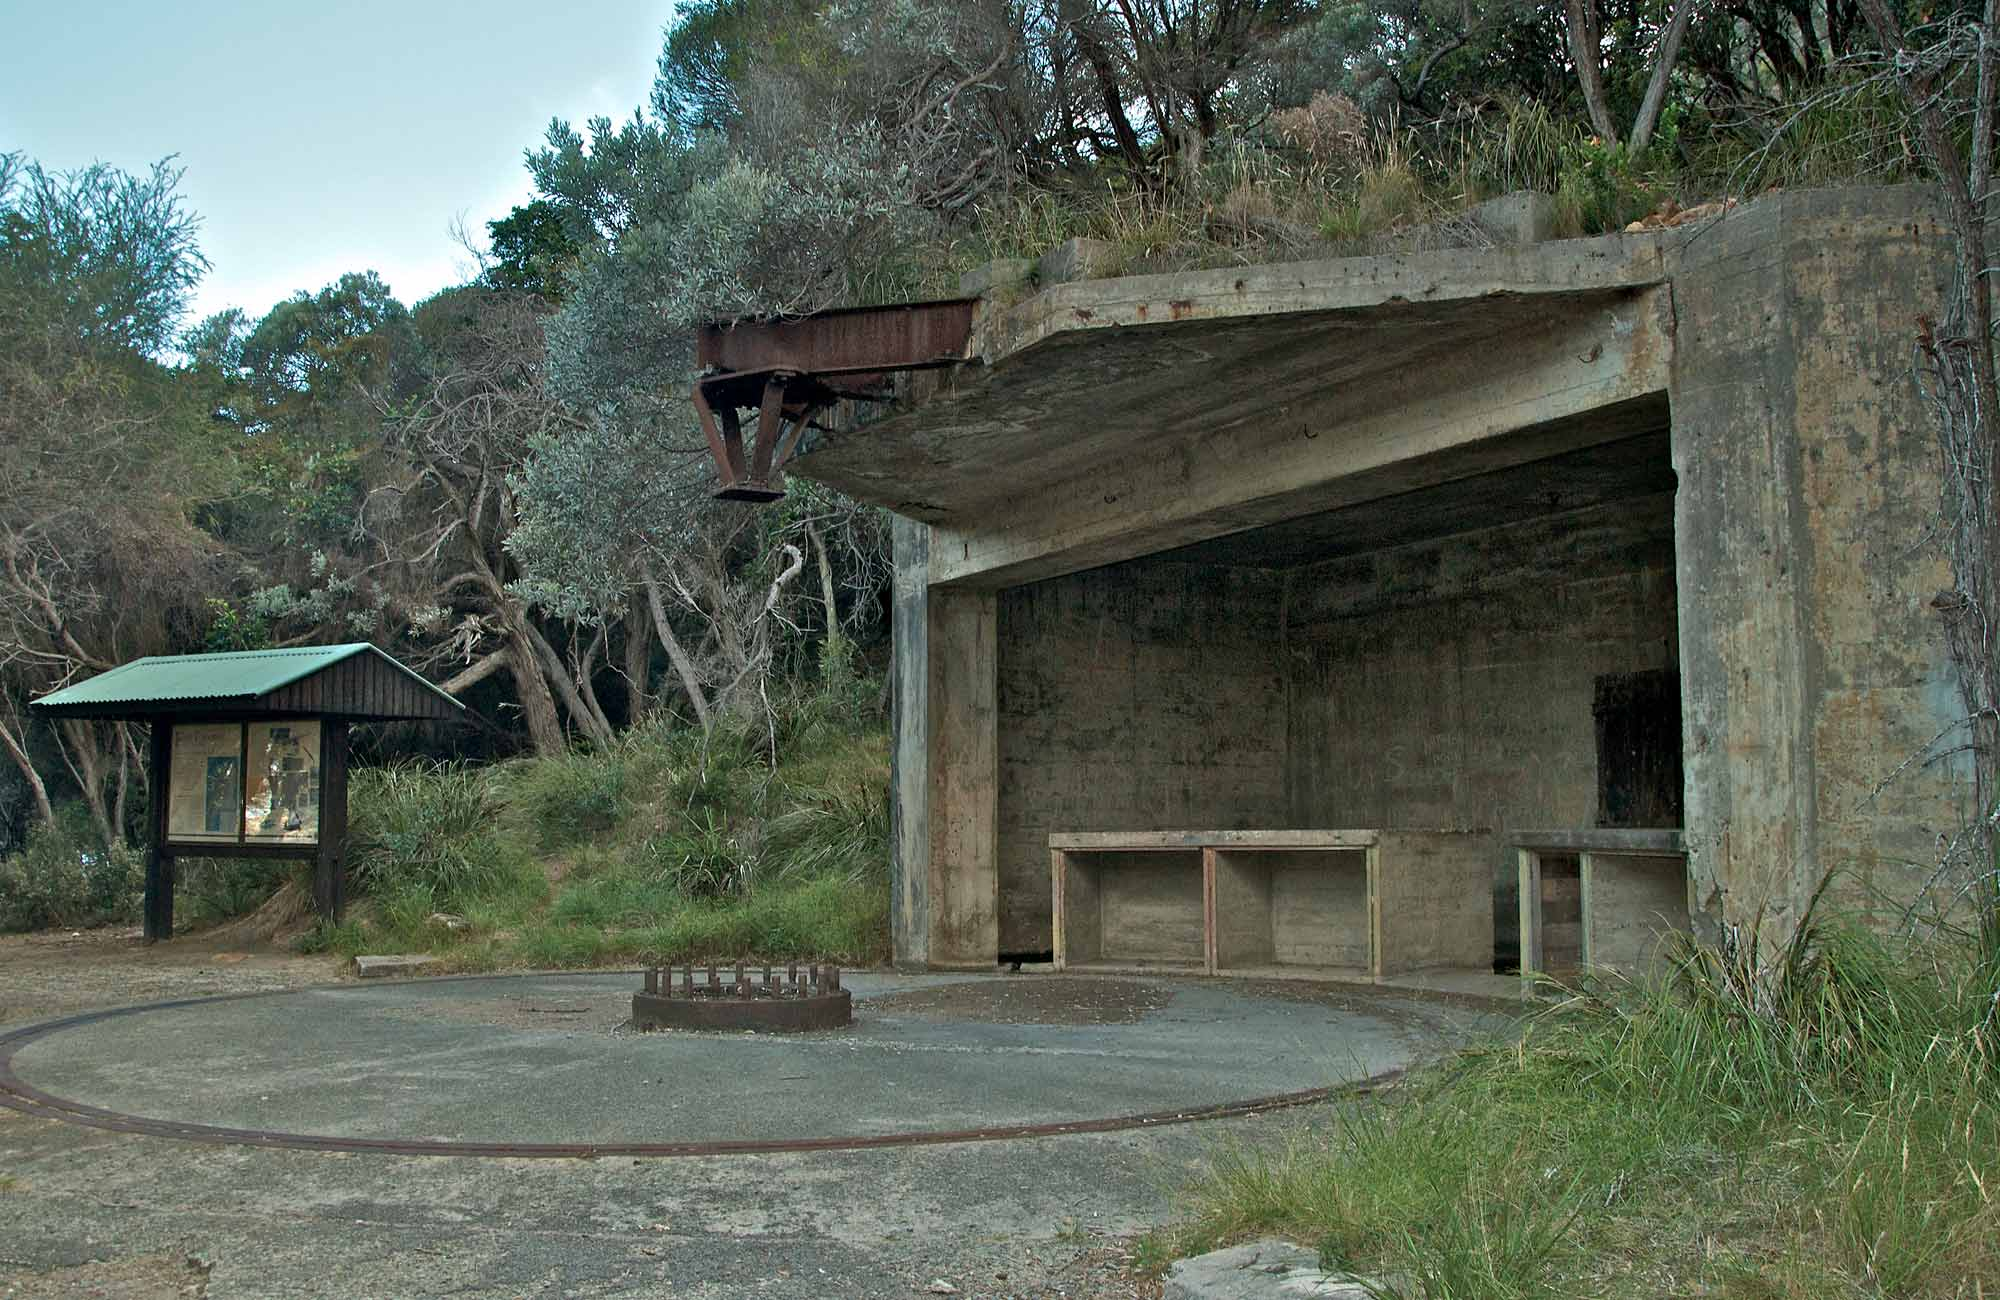 World Wat II Emplacement, Tomaree National Park. Photo: John Spencer